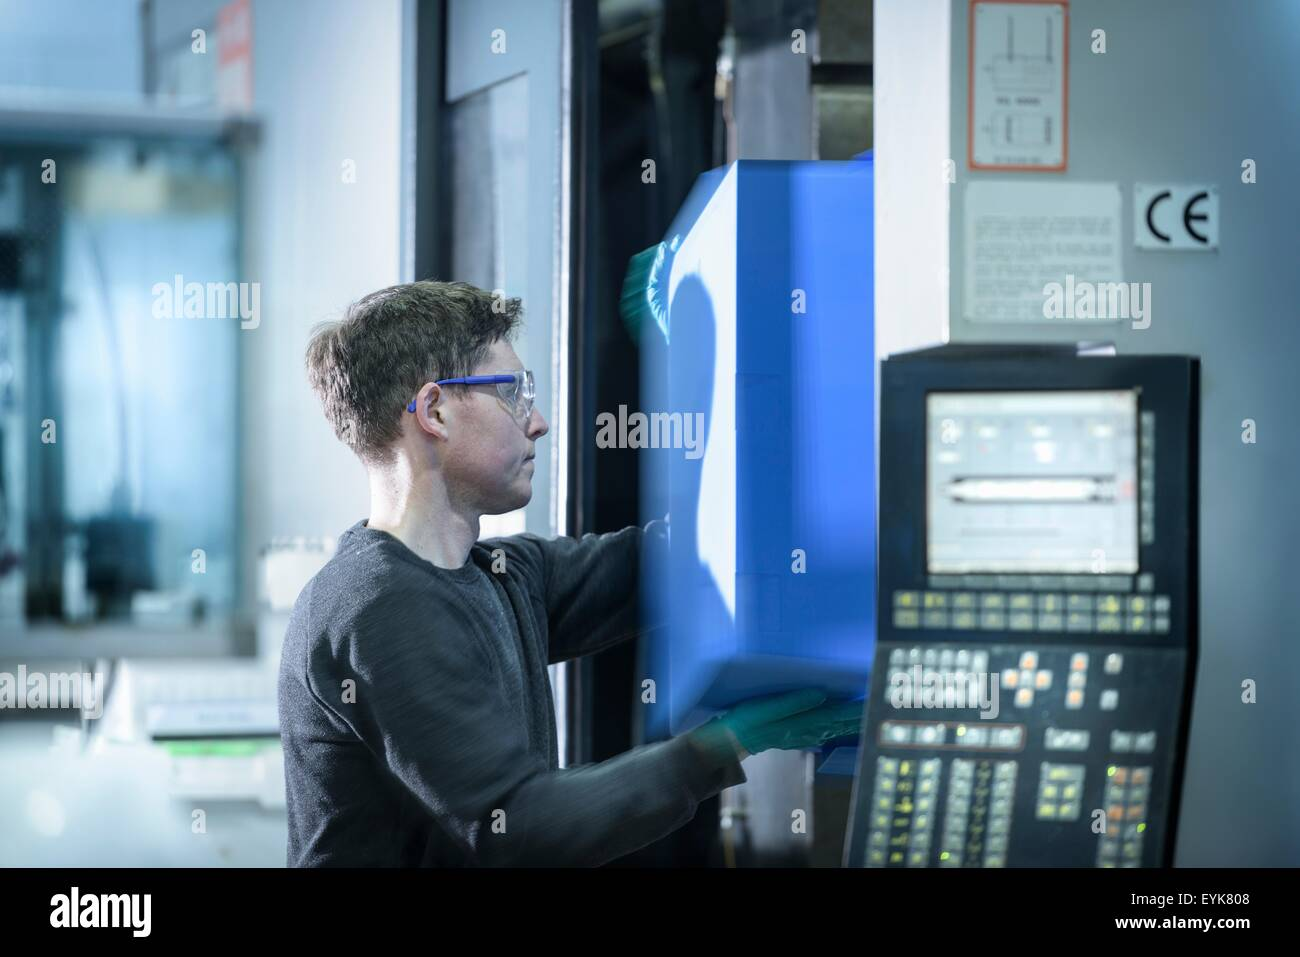 Worker removing plastic part from injection moulding machine in plastics factory - Stock Image